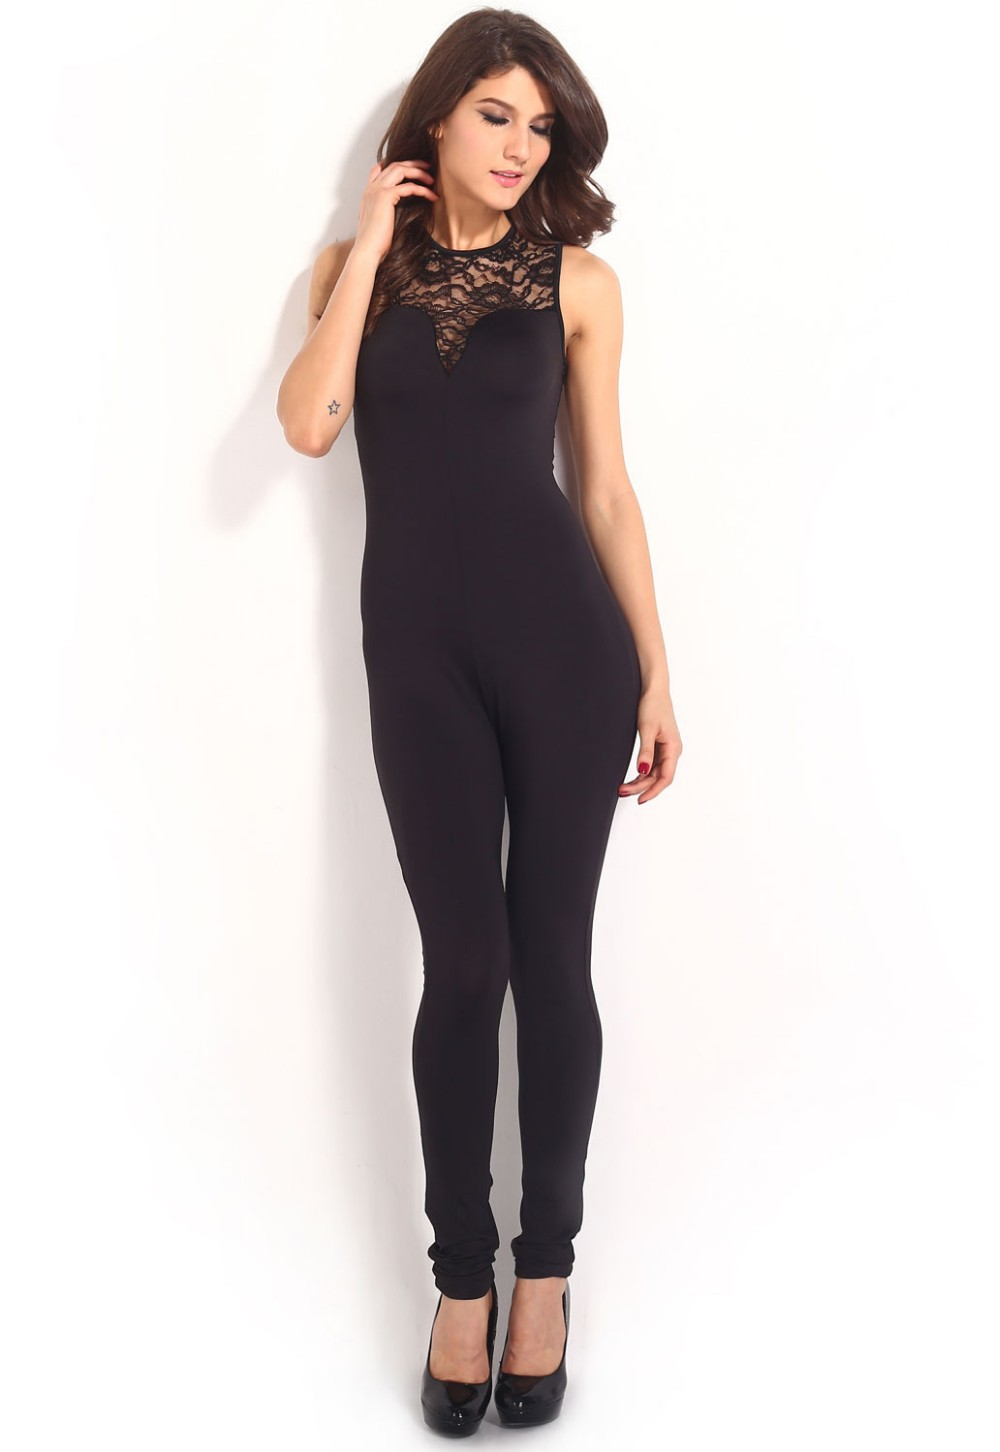 Free shipping and returns on Girls' Jumpsuits & Rompers Dresses & Rompers at fefdinterested.gq